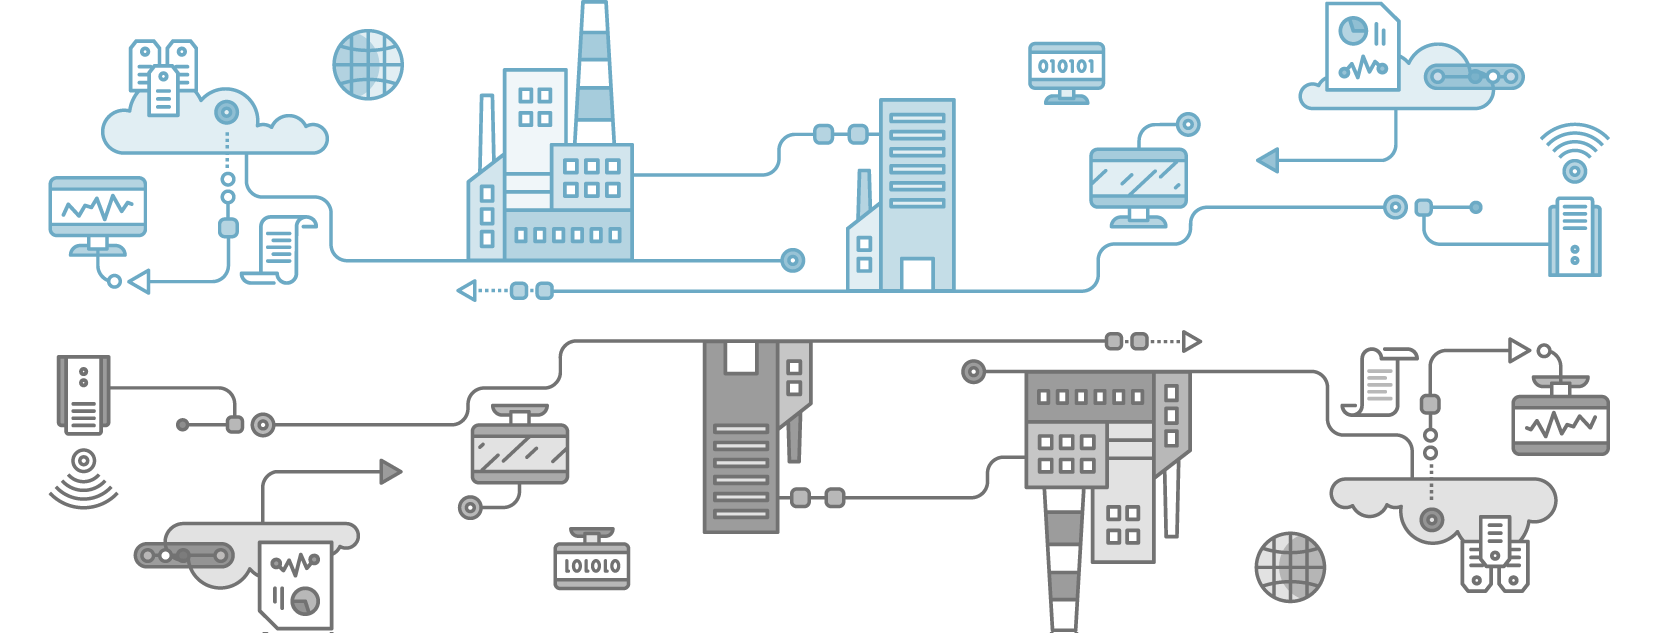 Design Like a Pro: Best Practices for IIoT | Inductive Automation